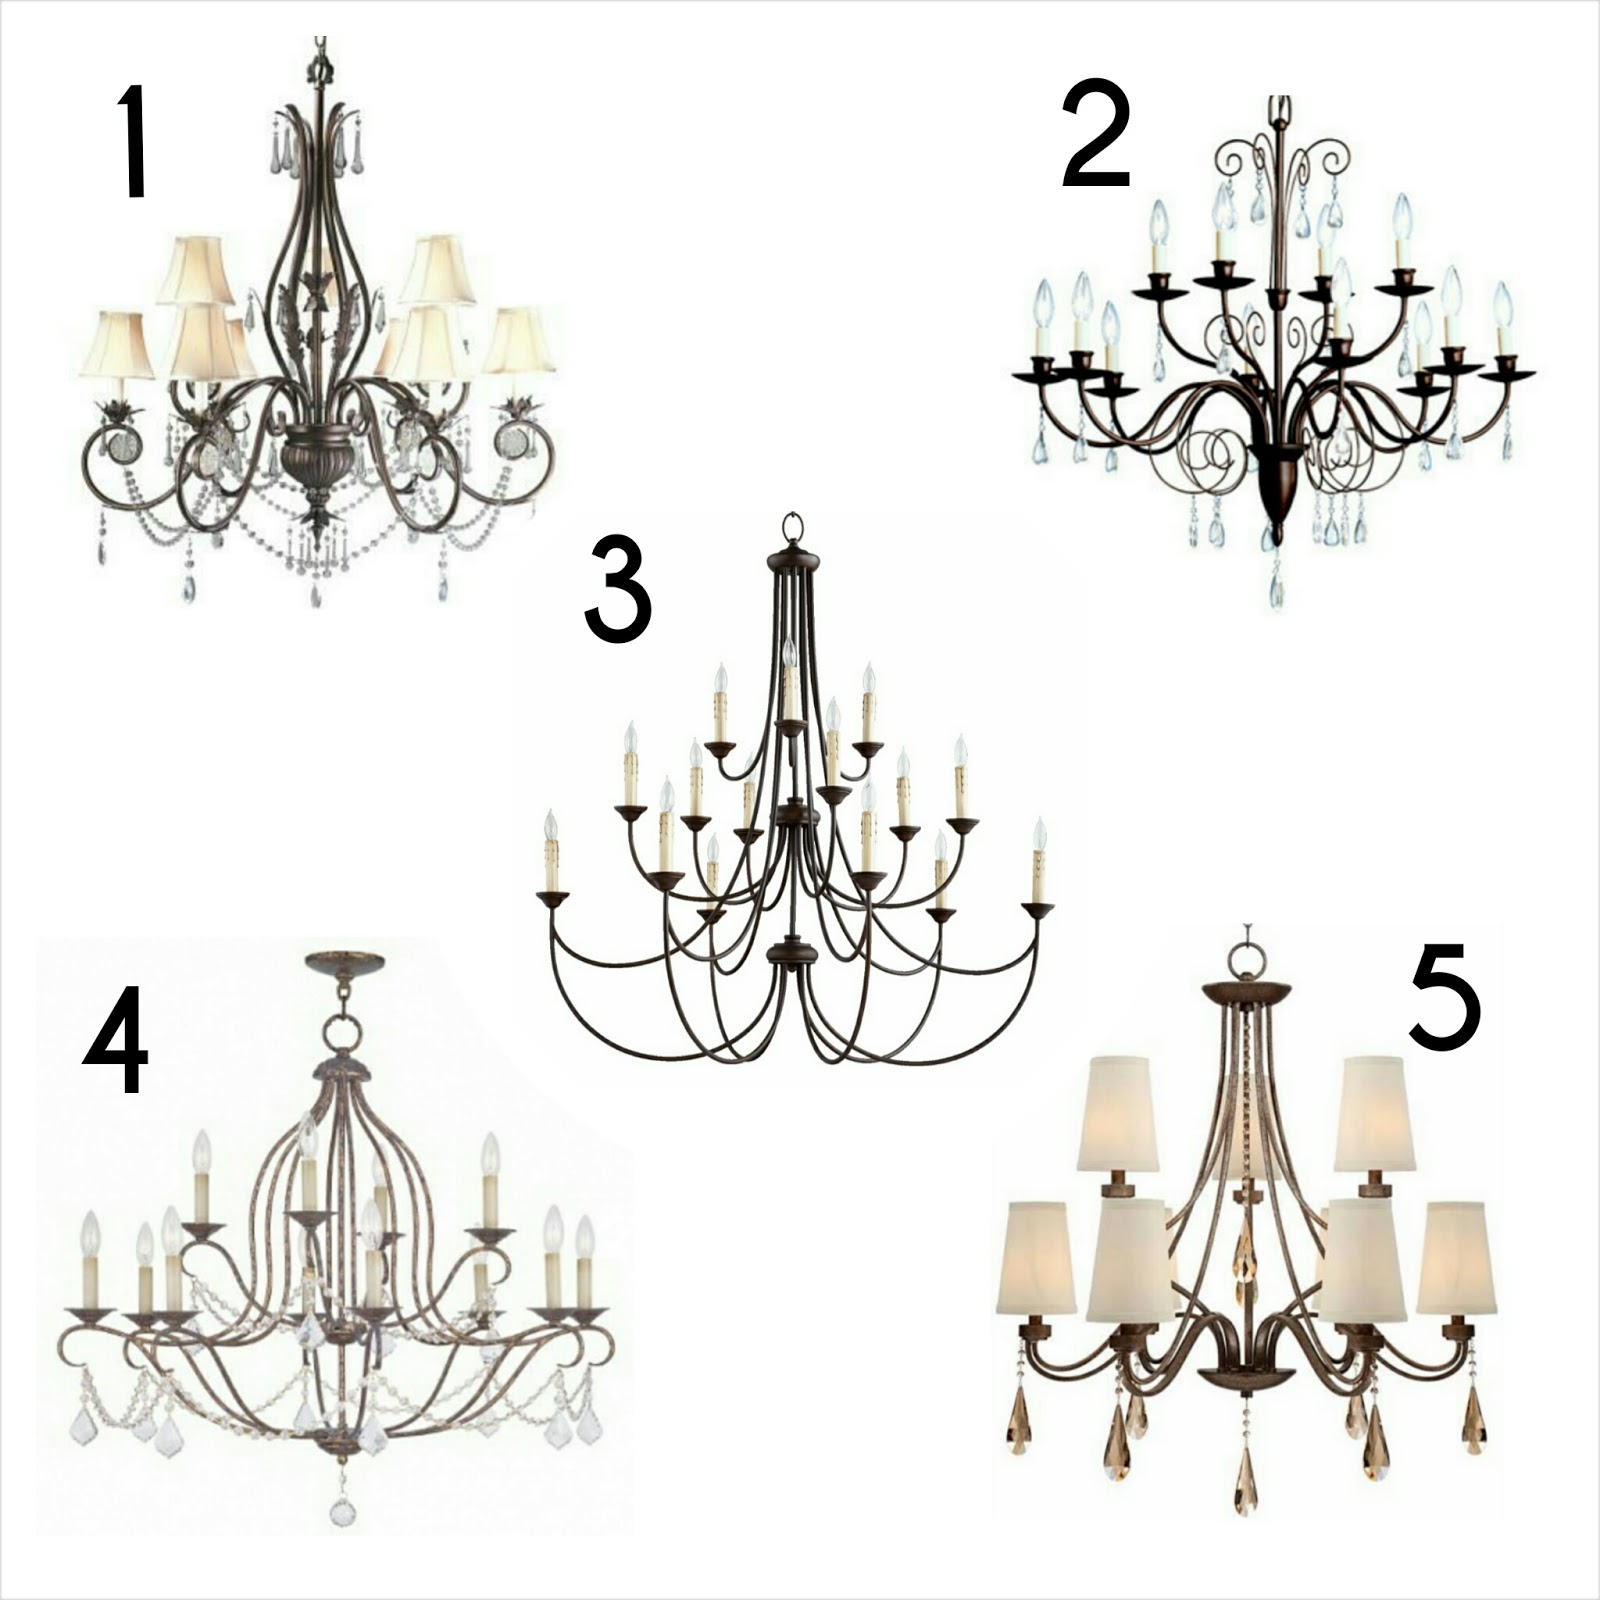 Studio 7 Interior Design The Friday Five Traditional Chandelier s